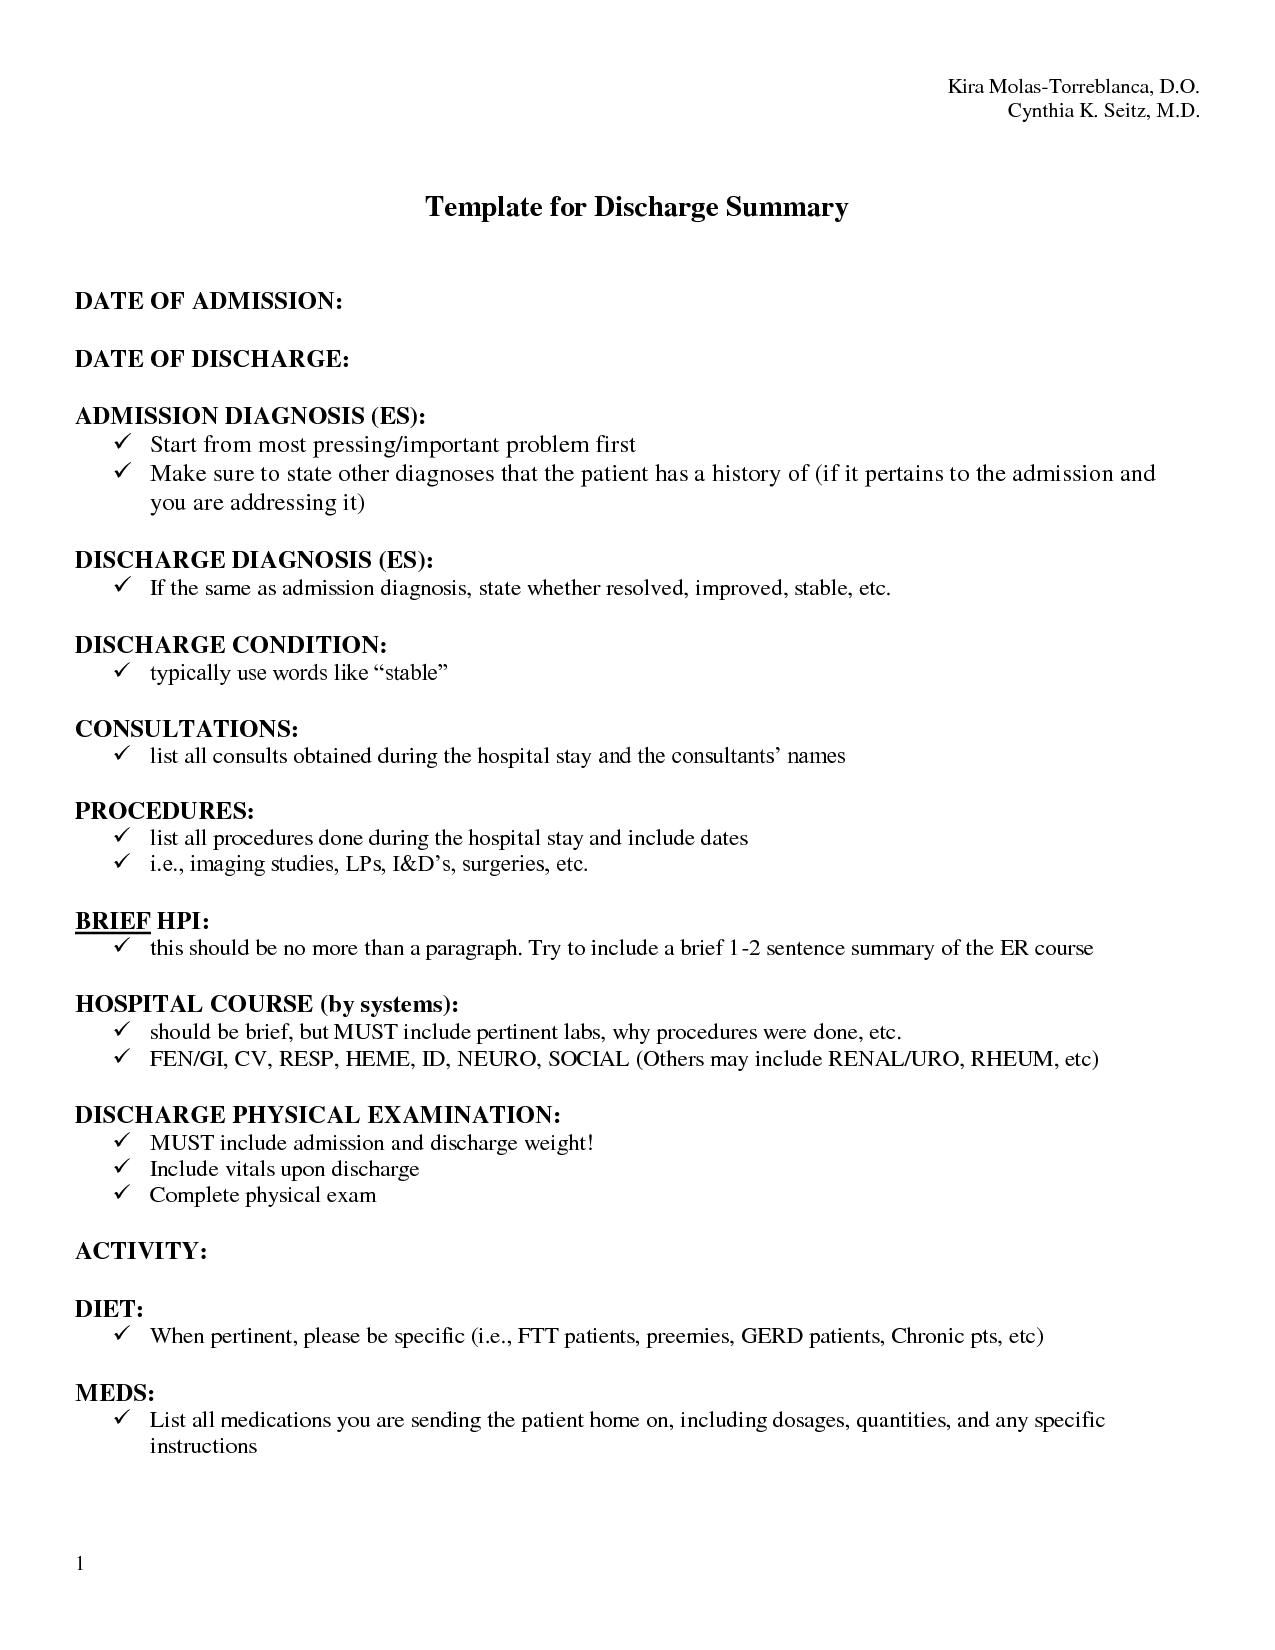 sample discharge summary templates to download business template